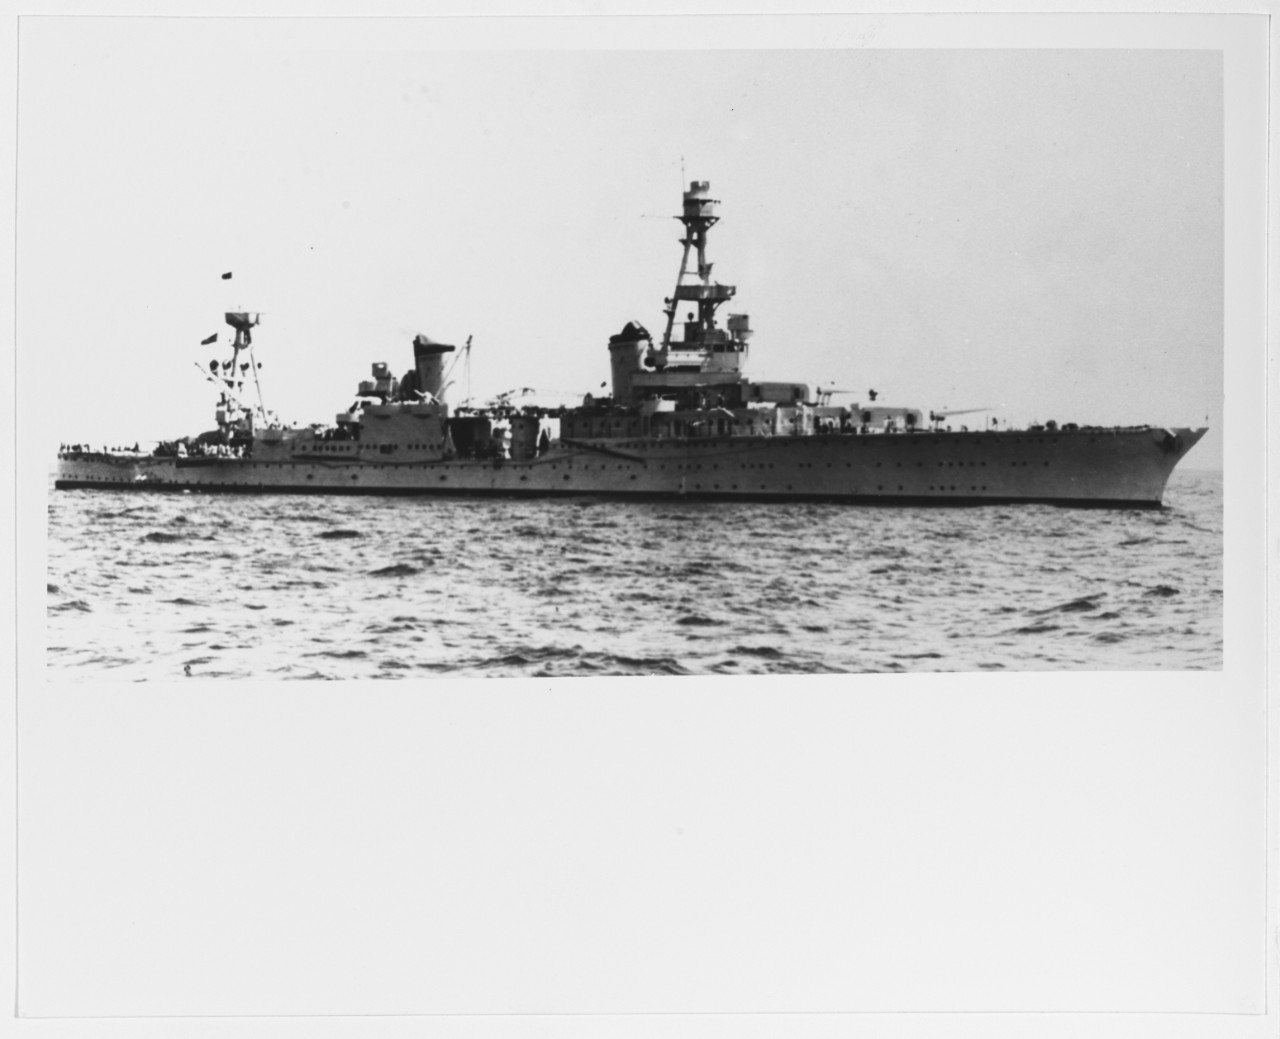 USS HOUSTON (CA-30)